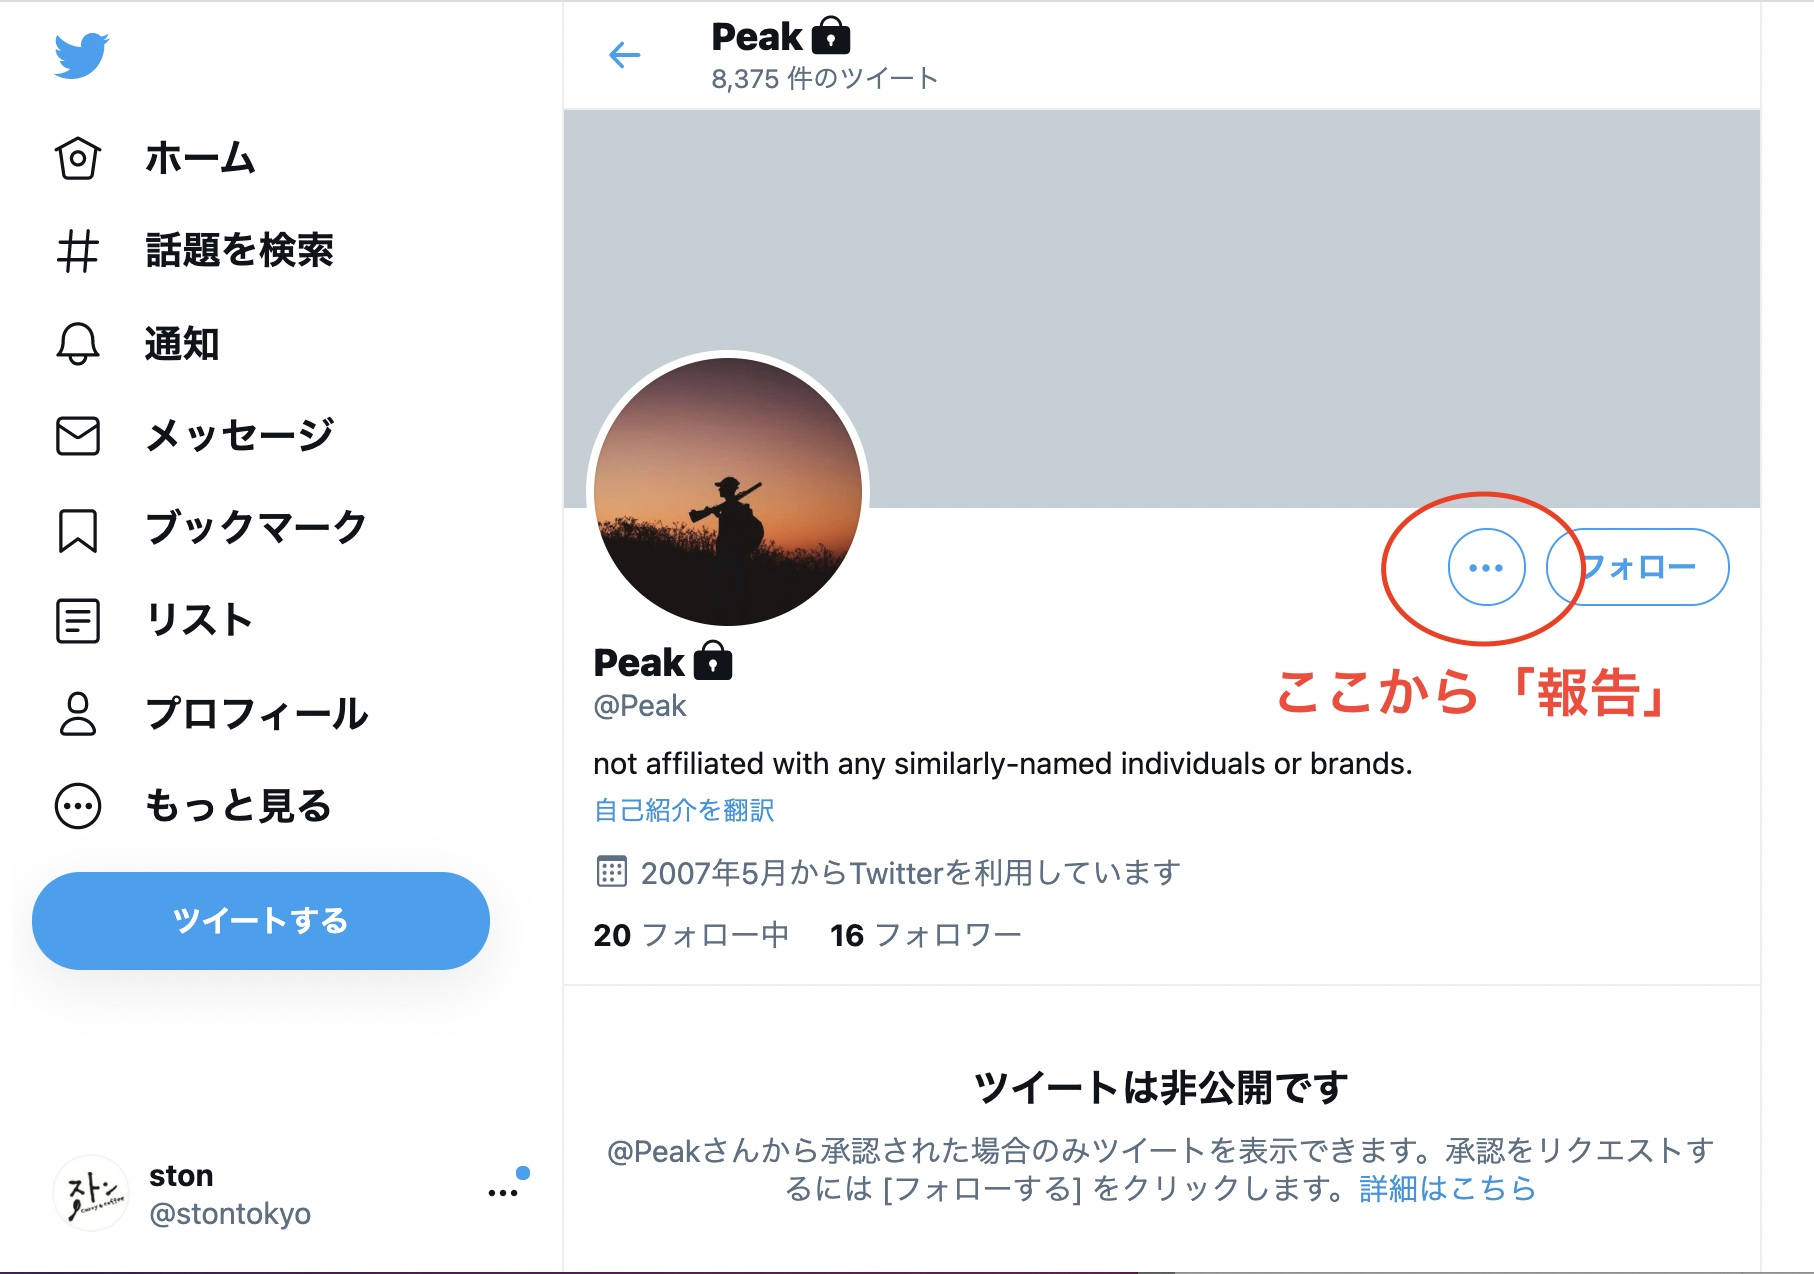 Twitter@Peak is HACKED